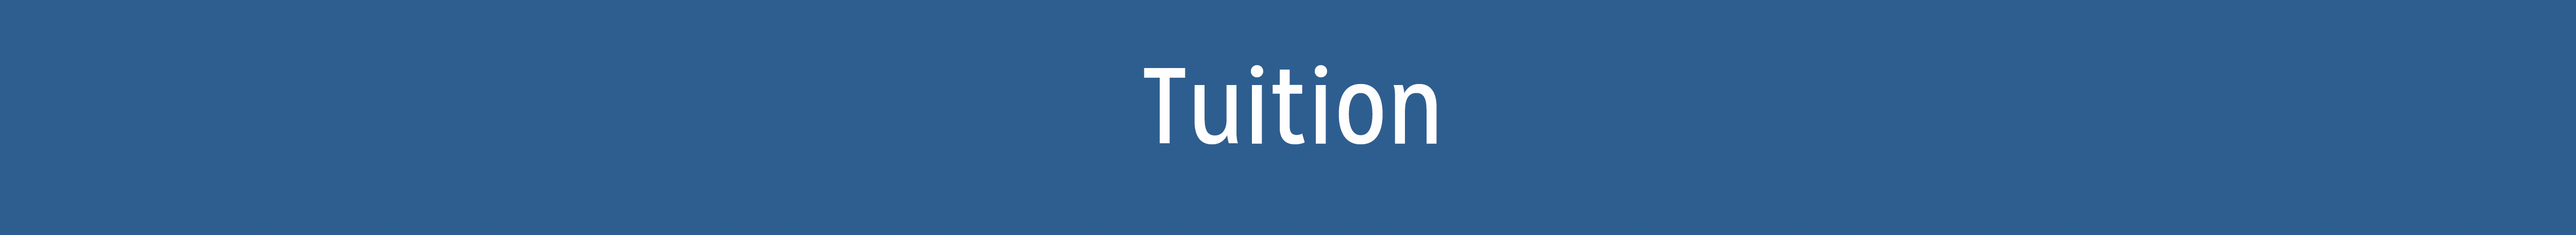 tuition_header